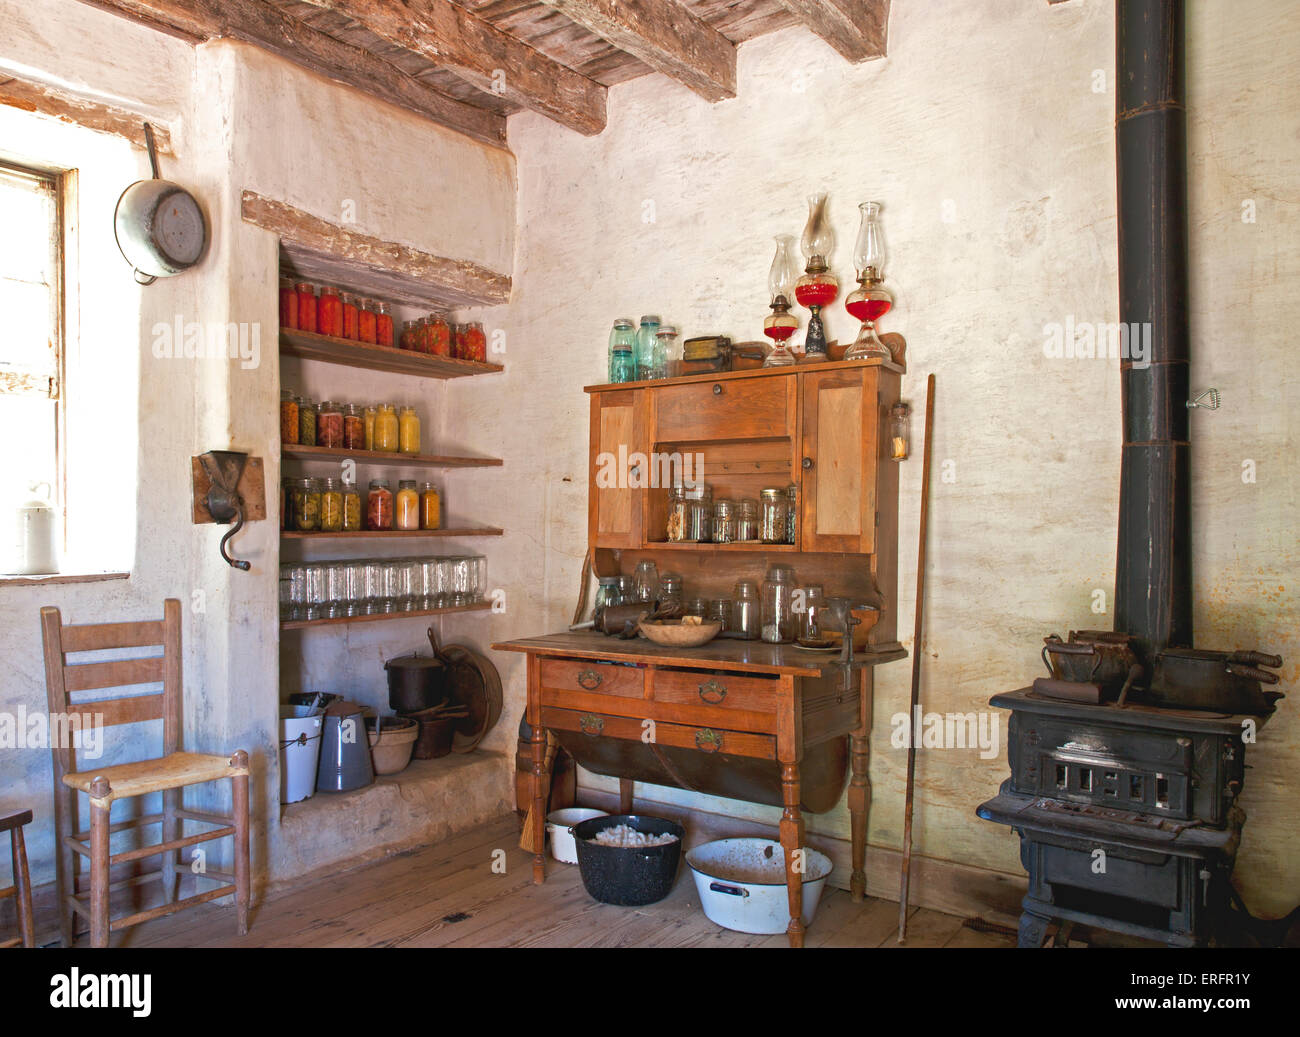 Early 1900s farm kitchen, with no electricity or running water, at